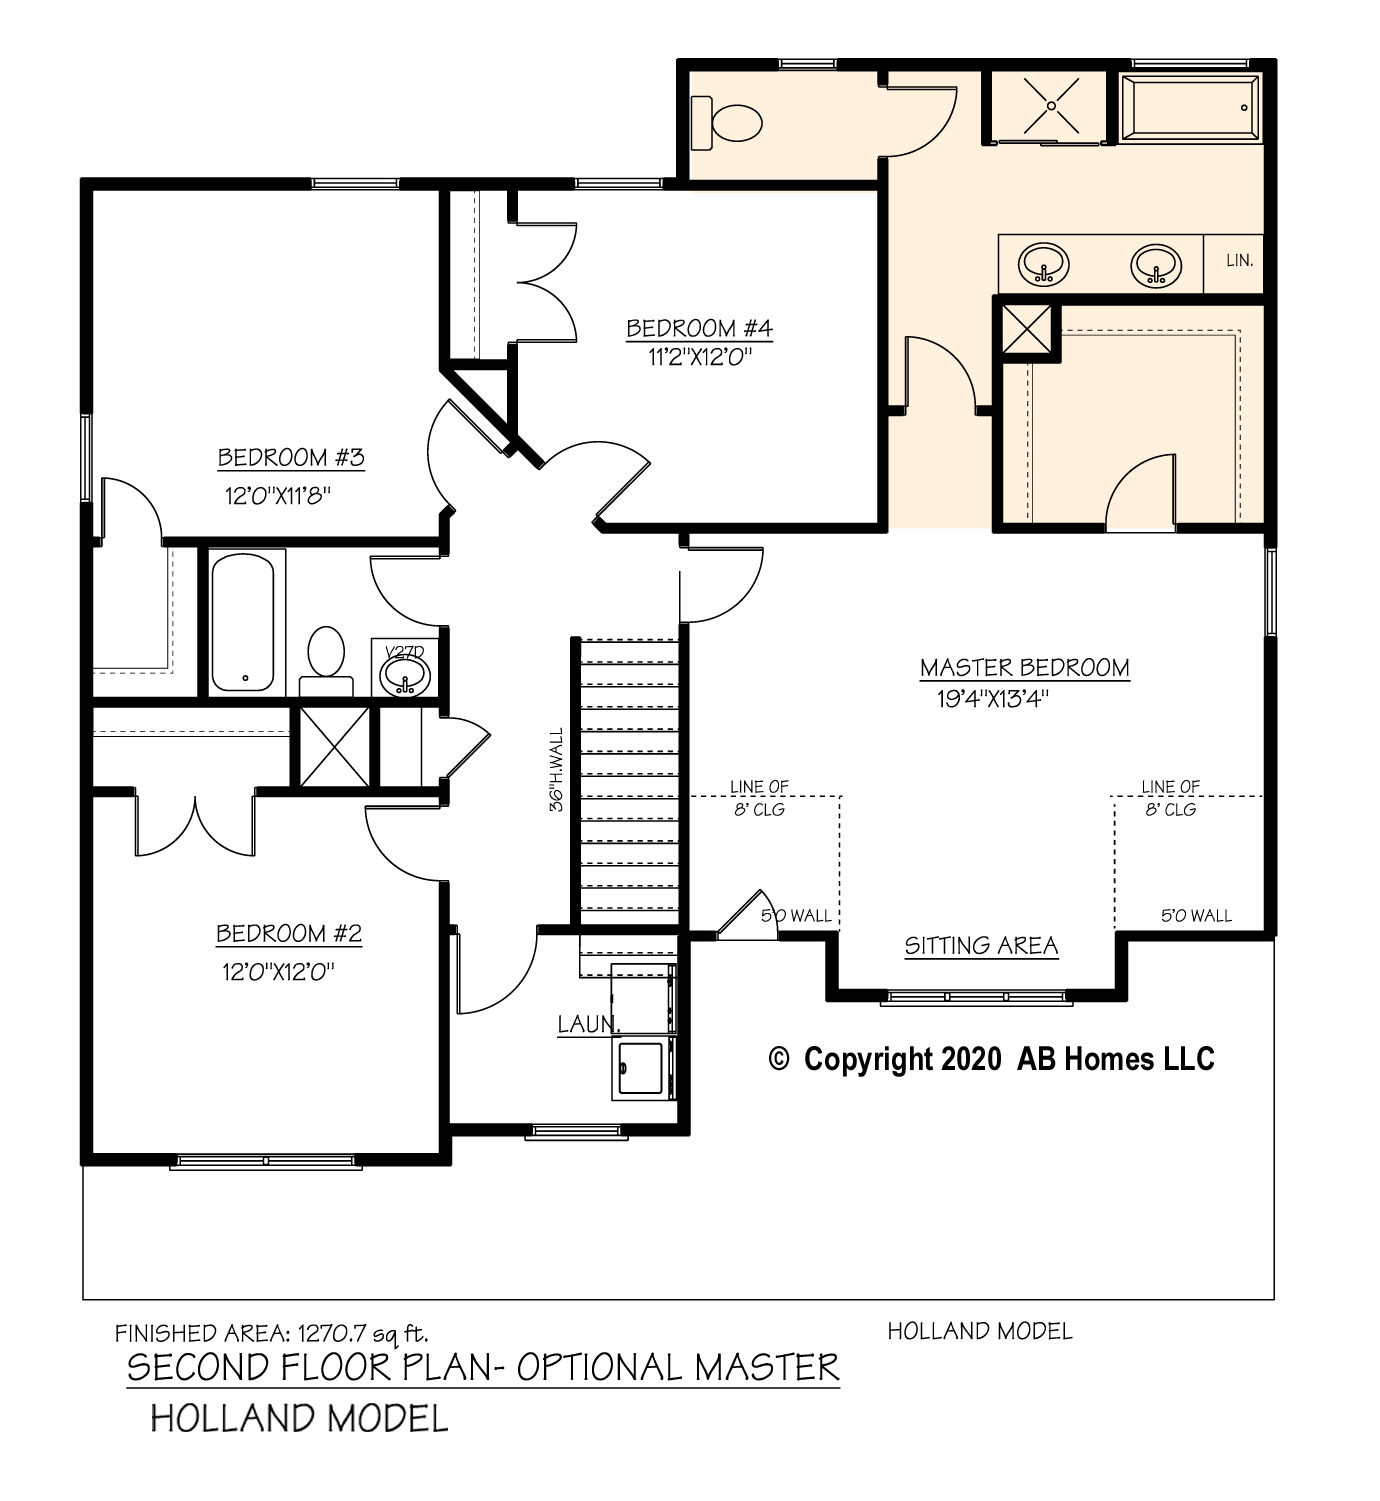 The Holland alternate second floor plan by AB Homes